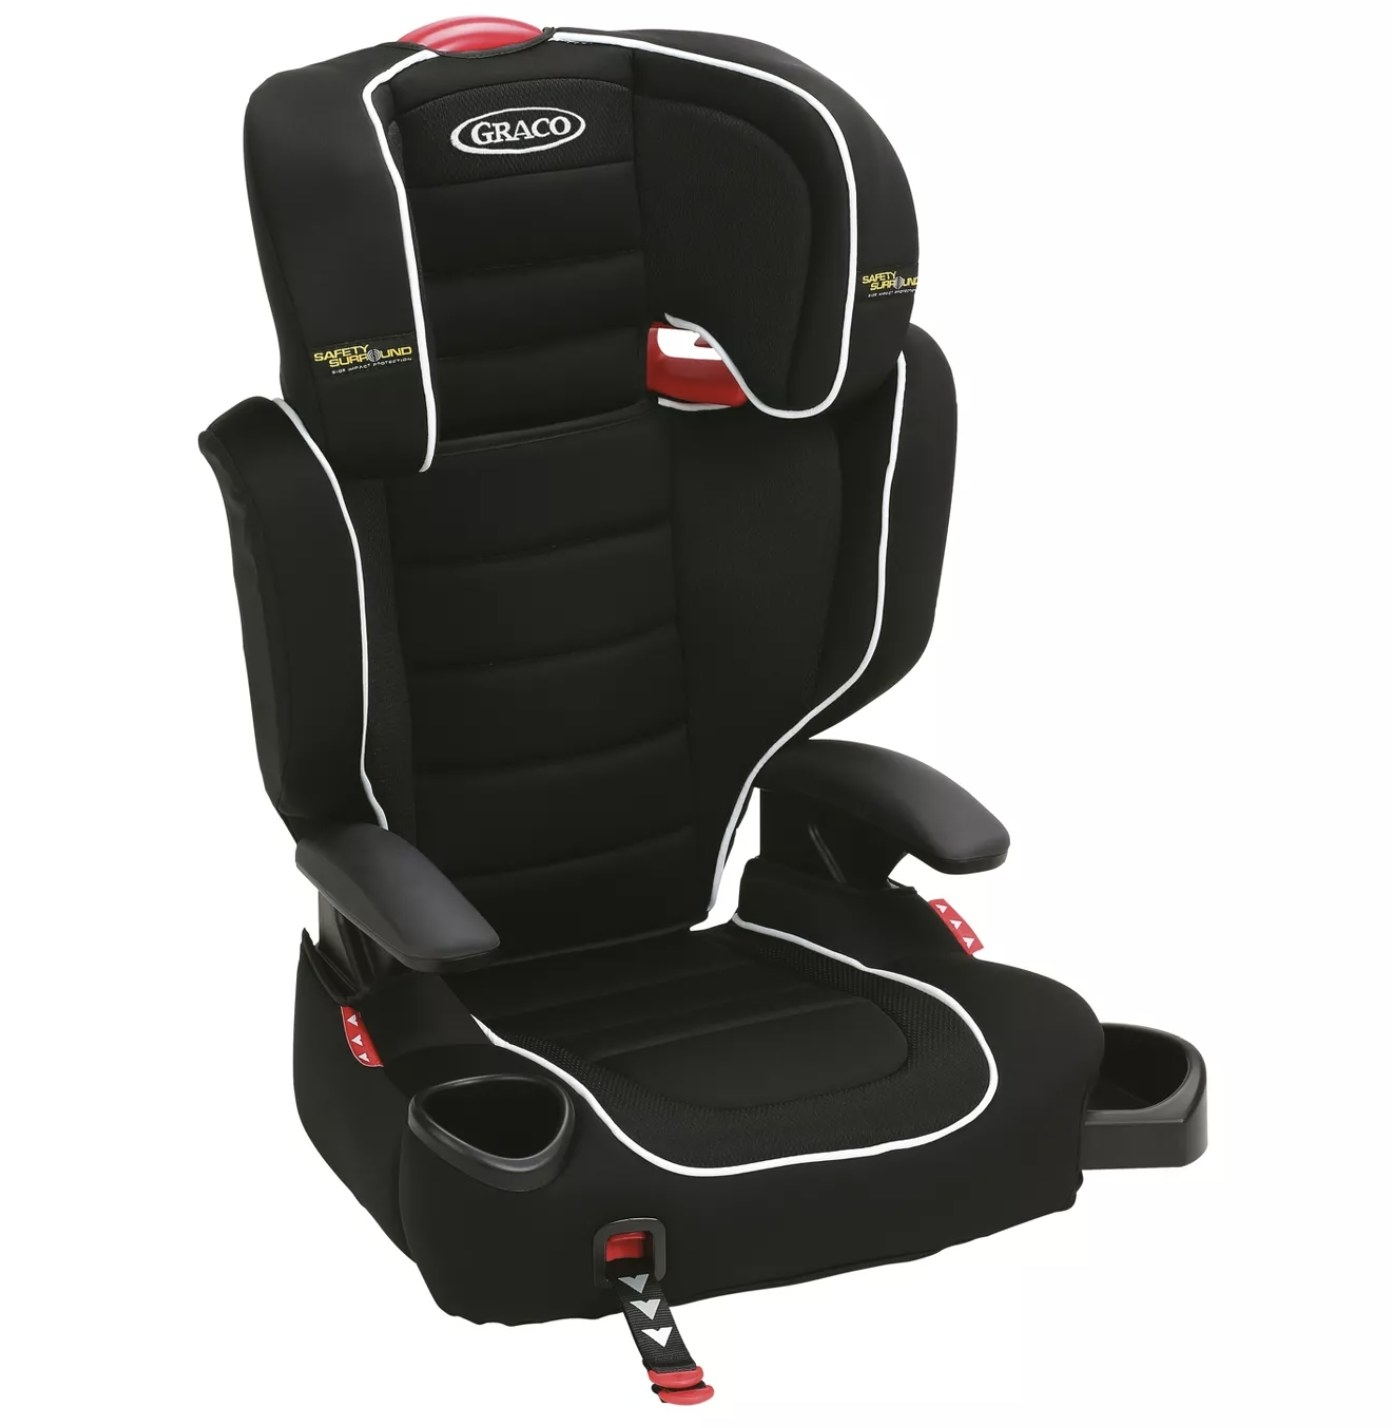 The black car seat